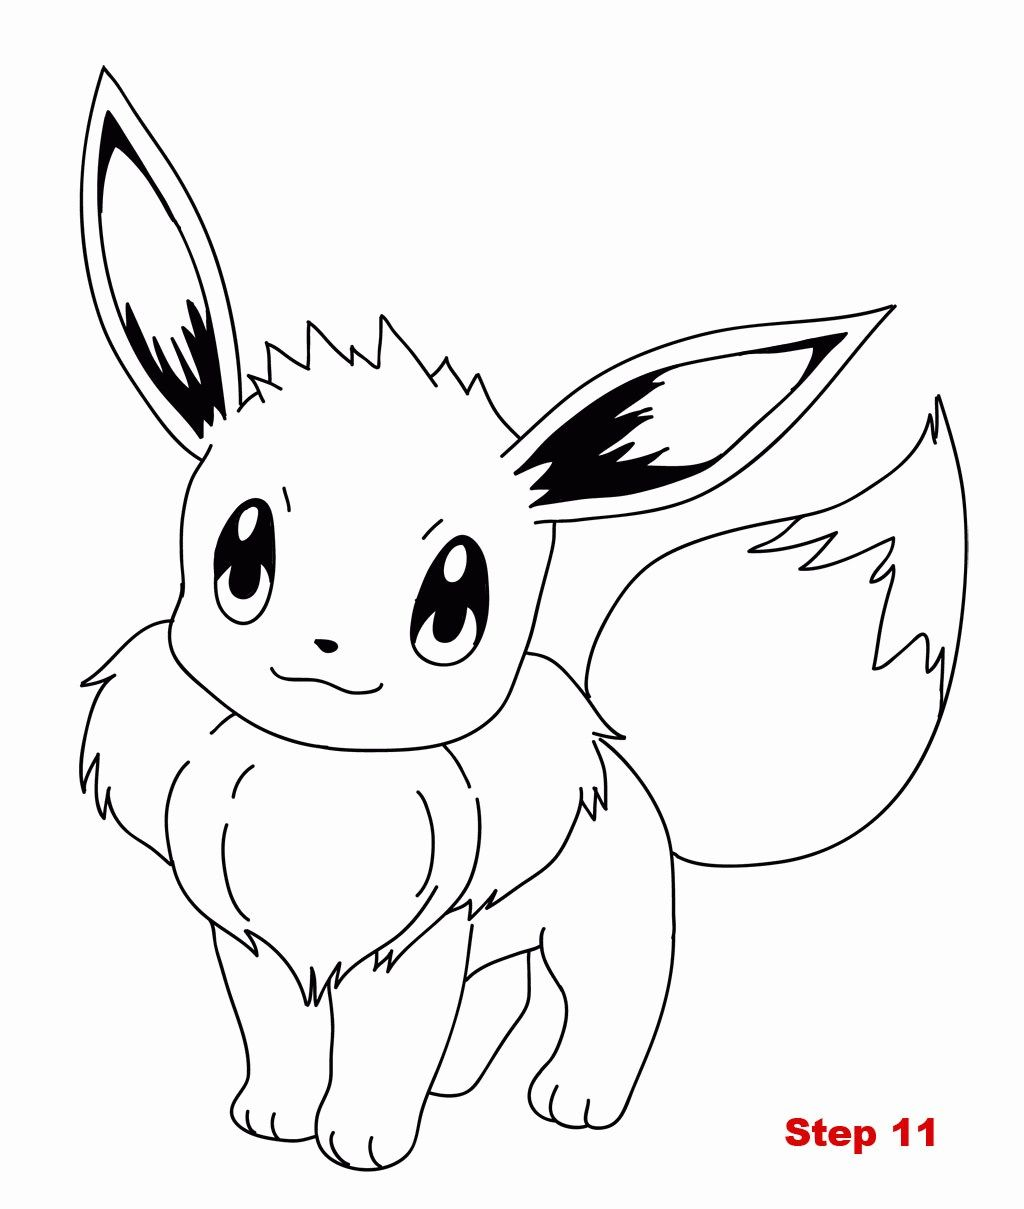 Pokemon Coloring Pages Eevee Eevee The Pokemon Coloring Page Coloring Home Davemelillo Com Pokemon Coloring Pages Pokemon Coloring Pokemon Coloring Sheets